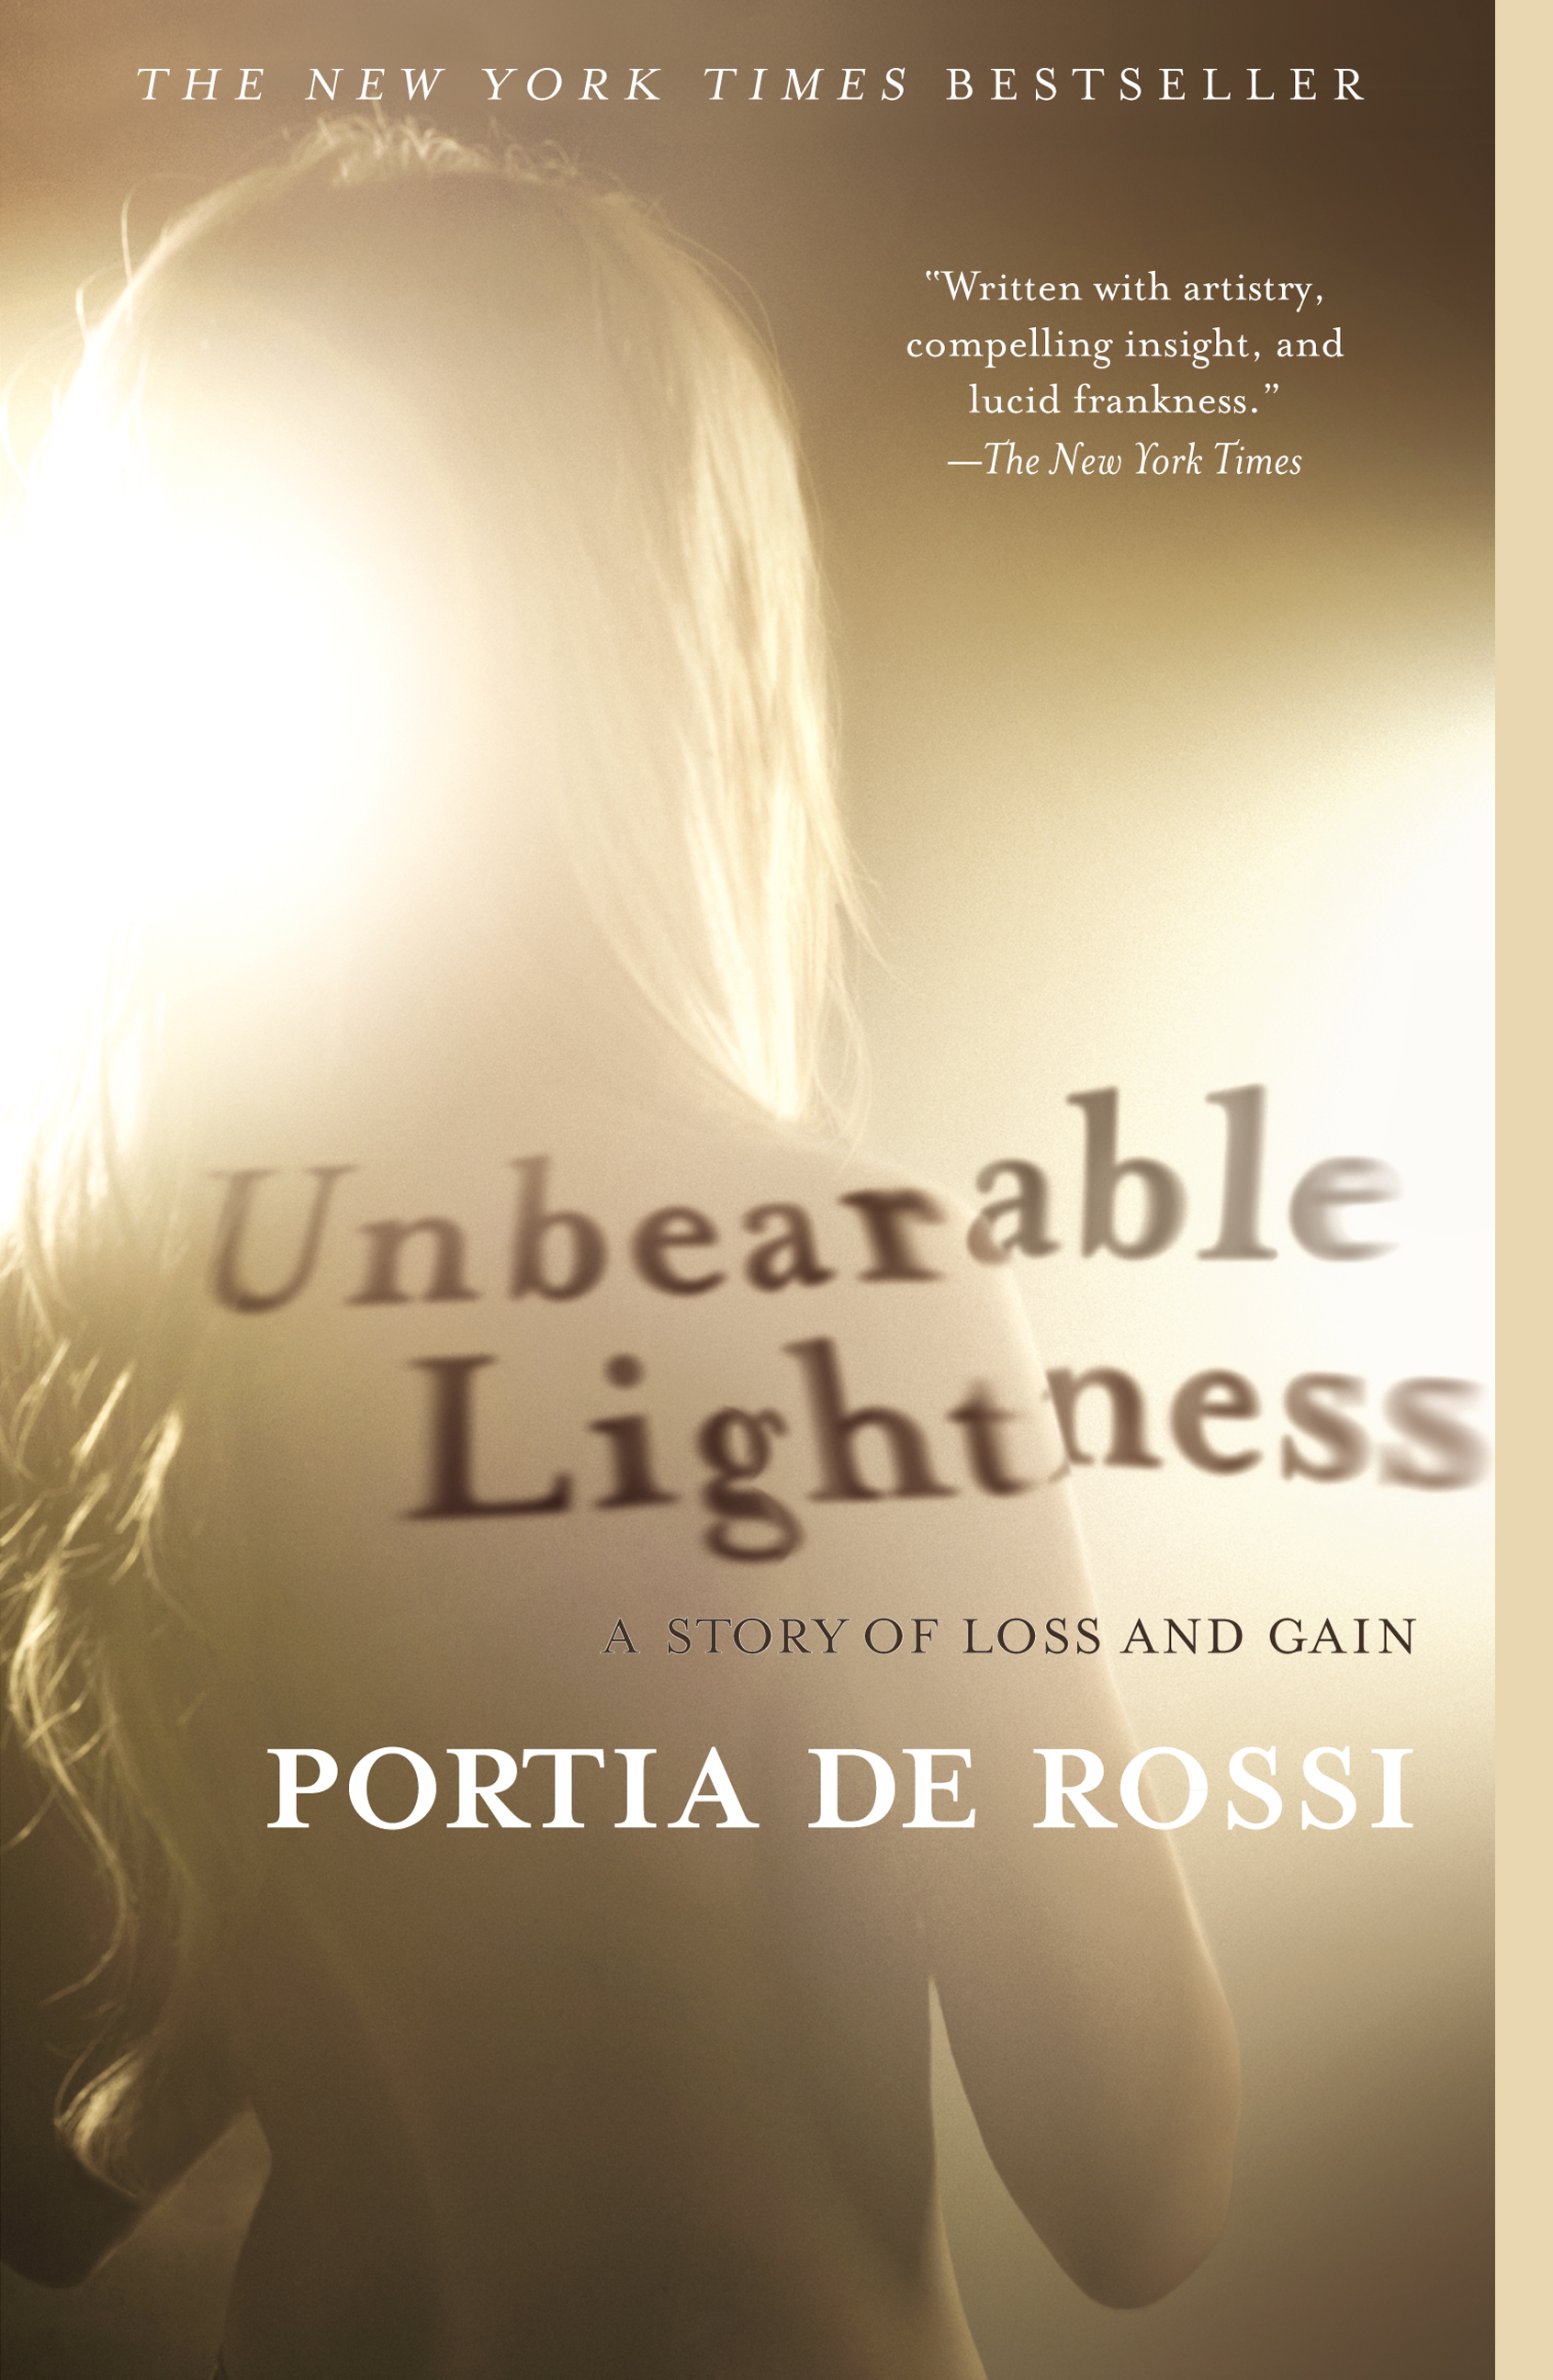 Portia de Rossi unbearable lightness free pdf download